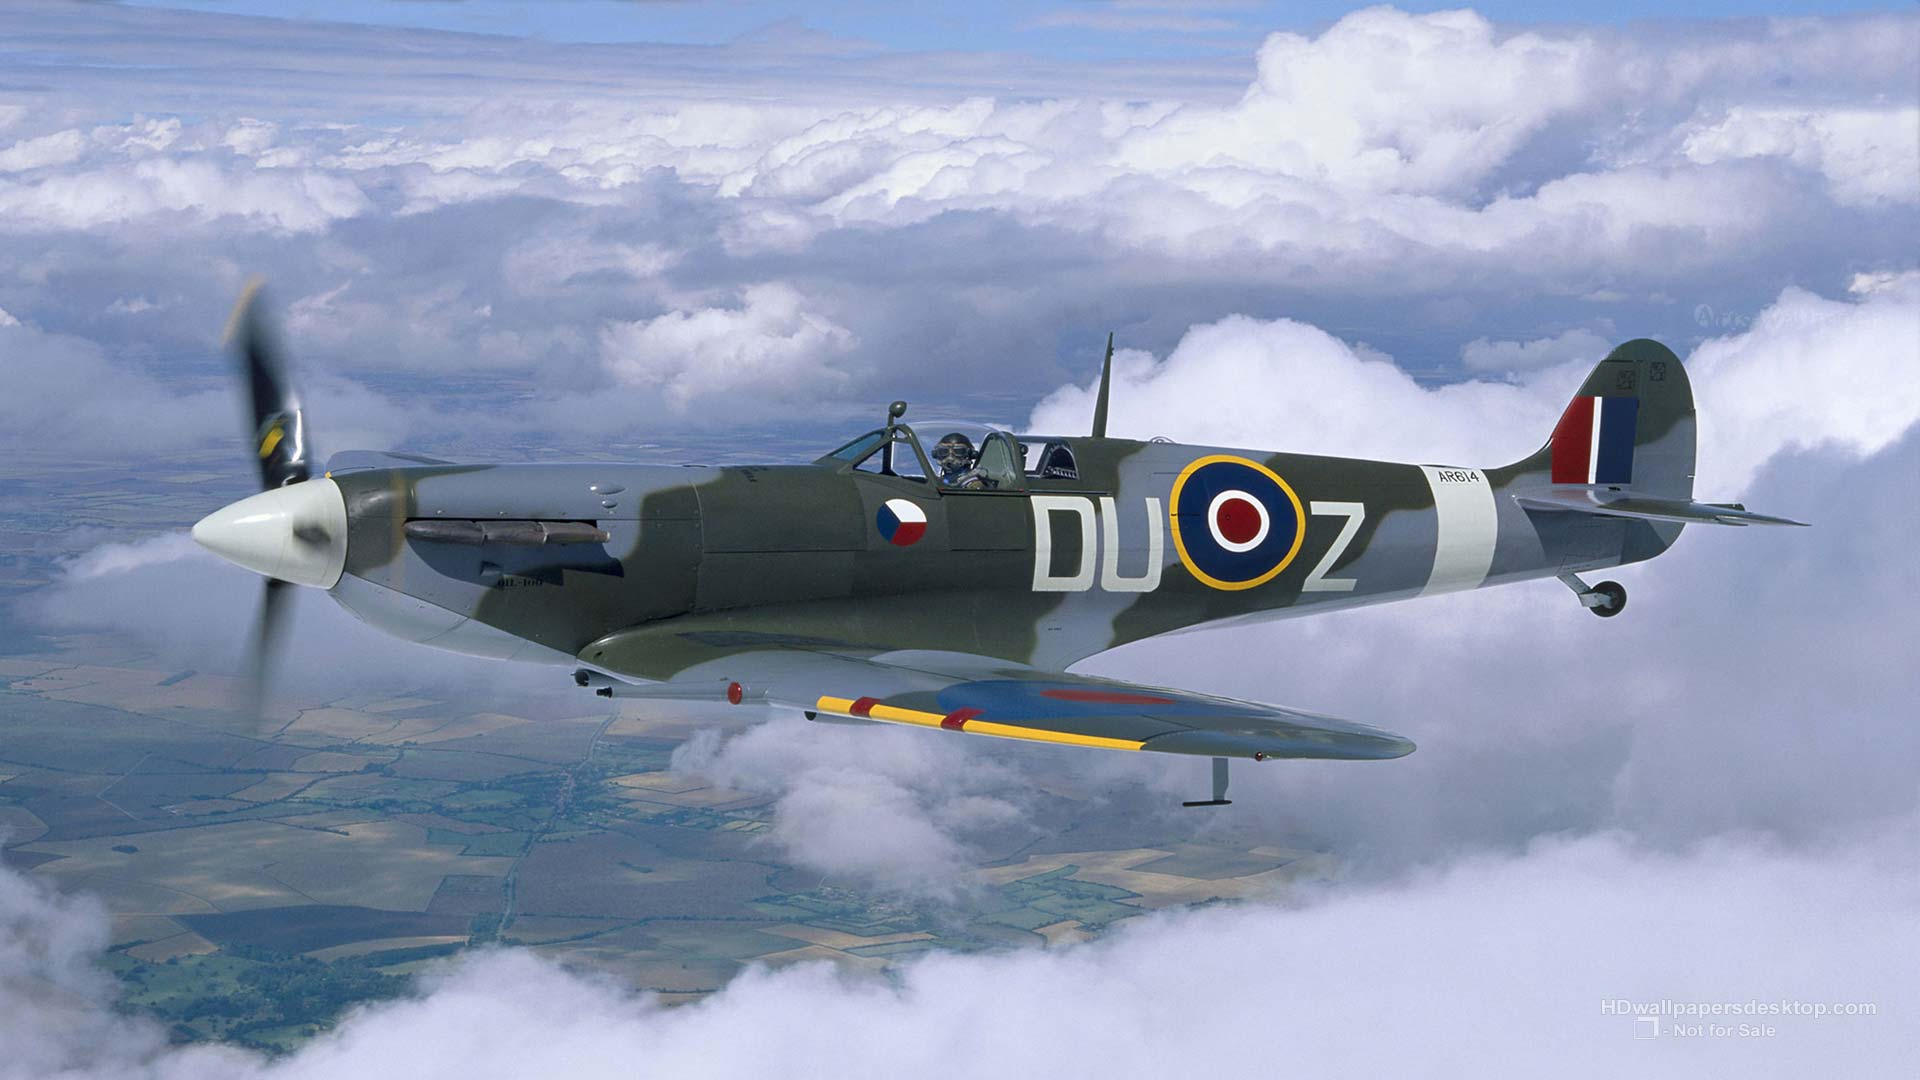 Military Hd Wallpapers 1080p: Spitfire Wallpapers Aircraft Backgrounds 1920x1080px